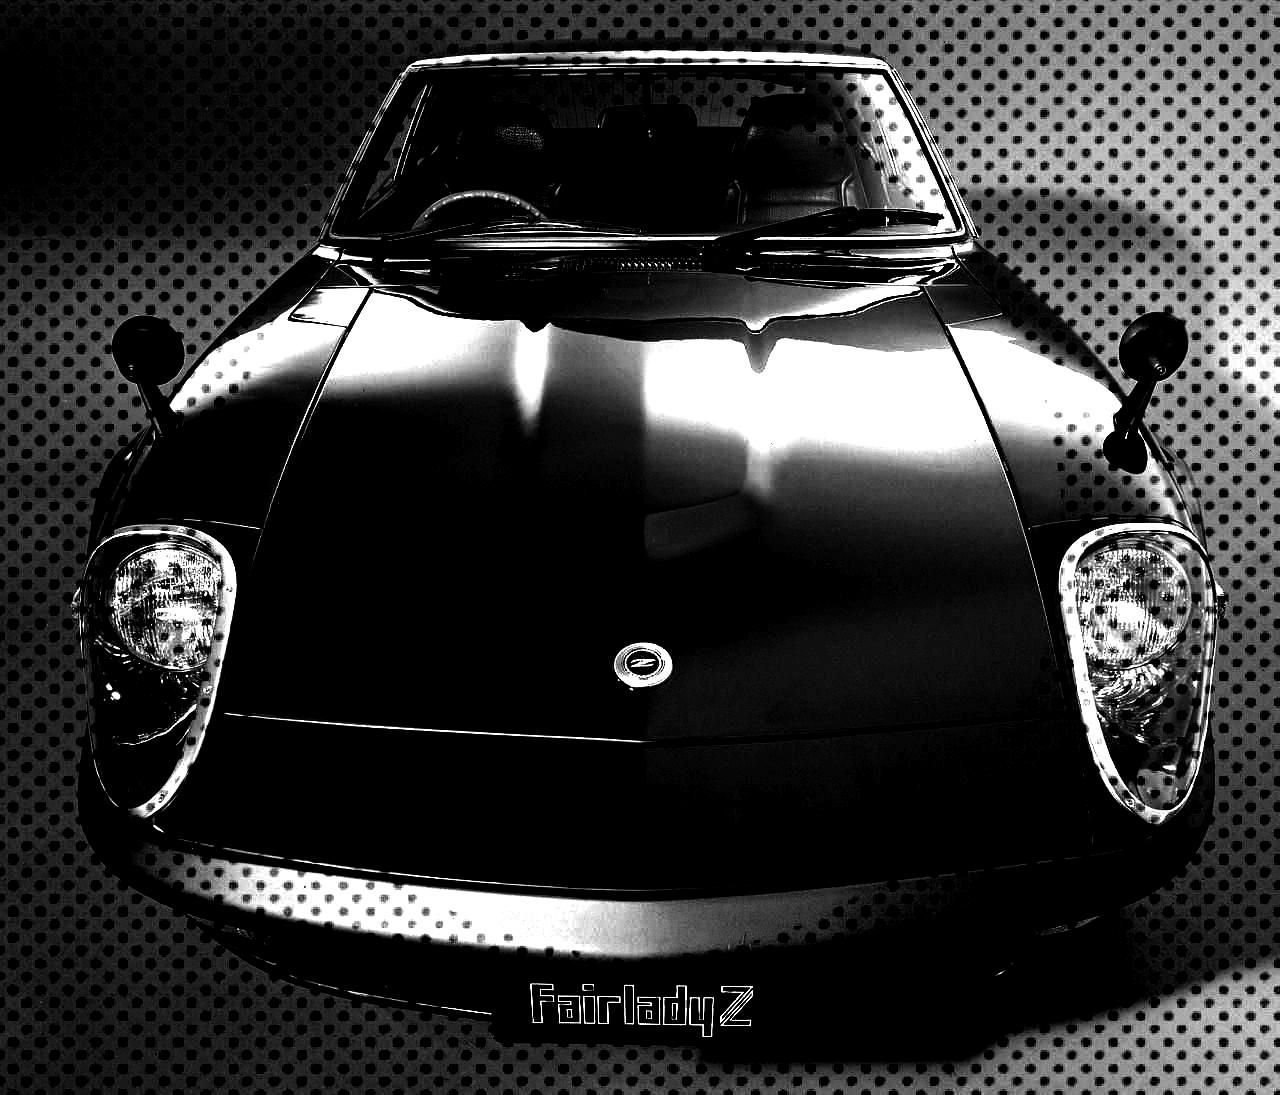 1971. A Japan-only HS30-H Fairlady to homologate the 240Z for Group 4 racing... -NissanFairlady 2